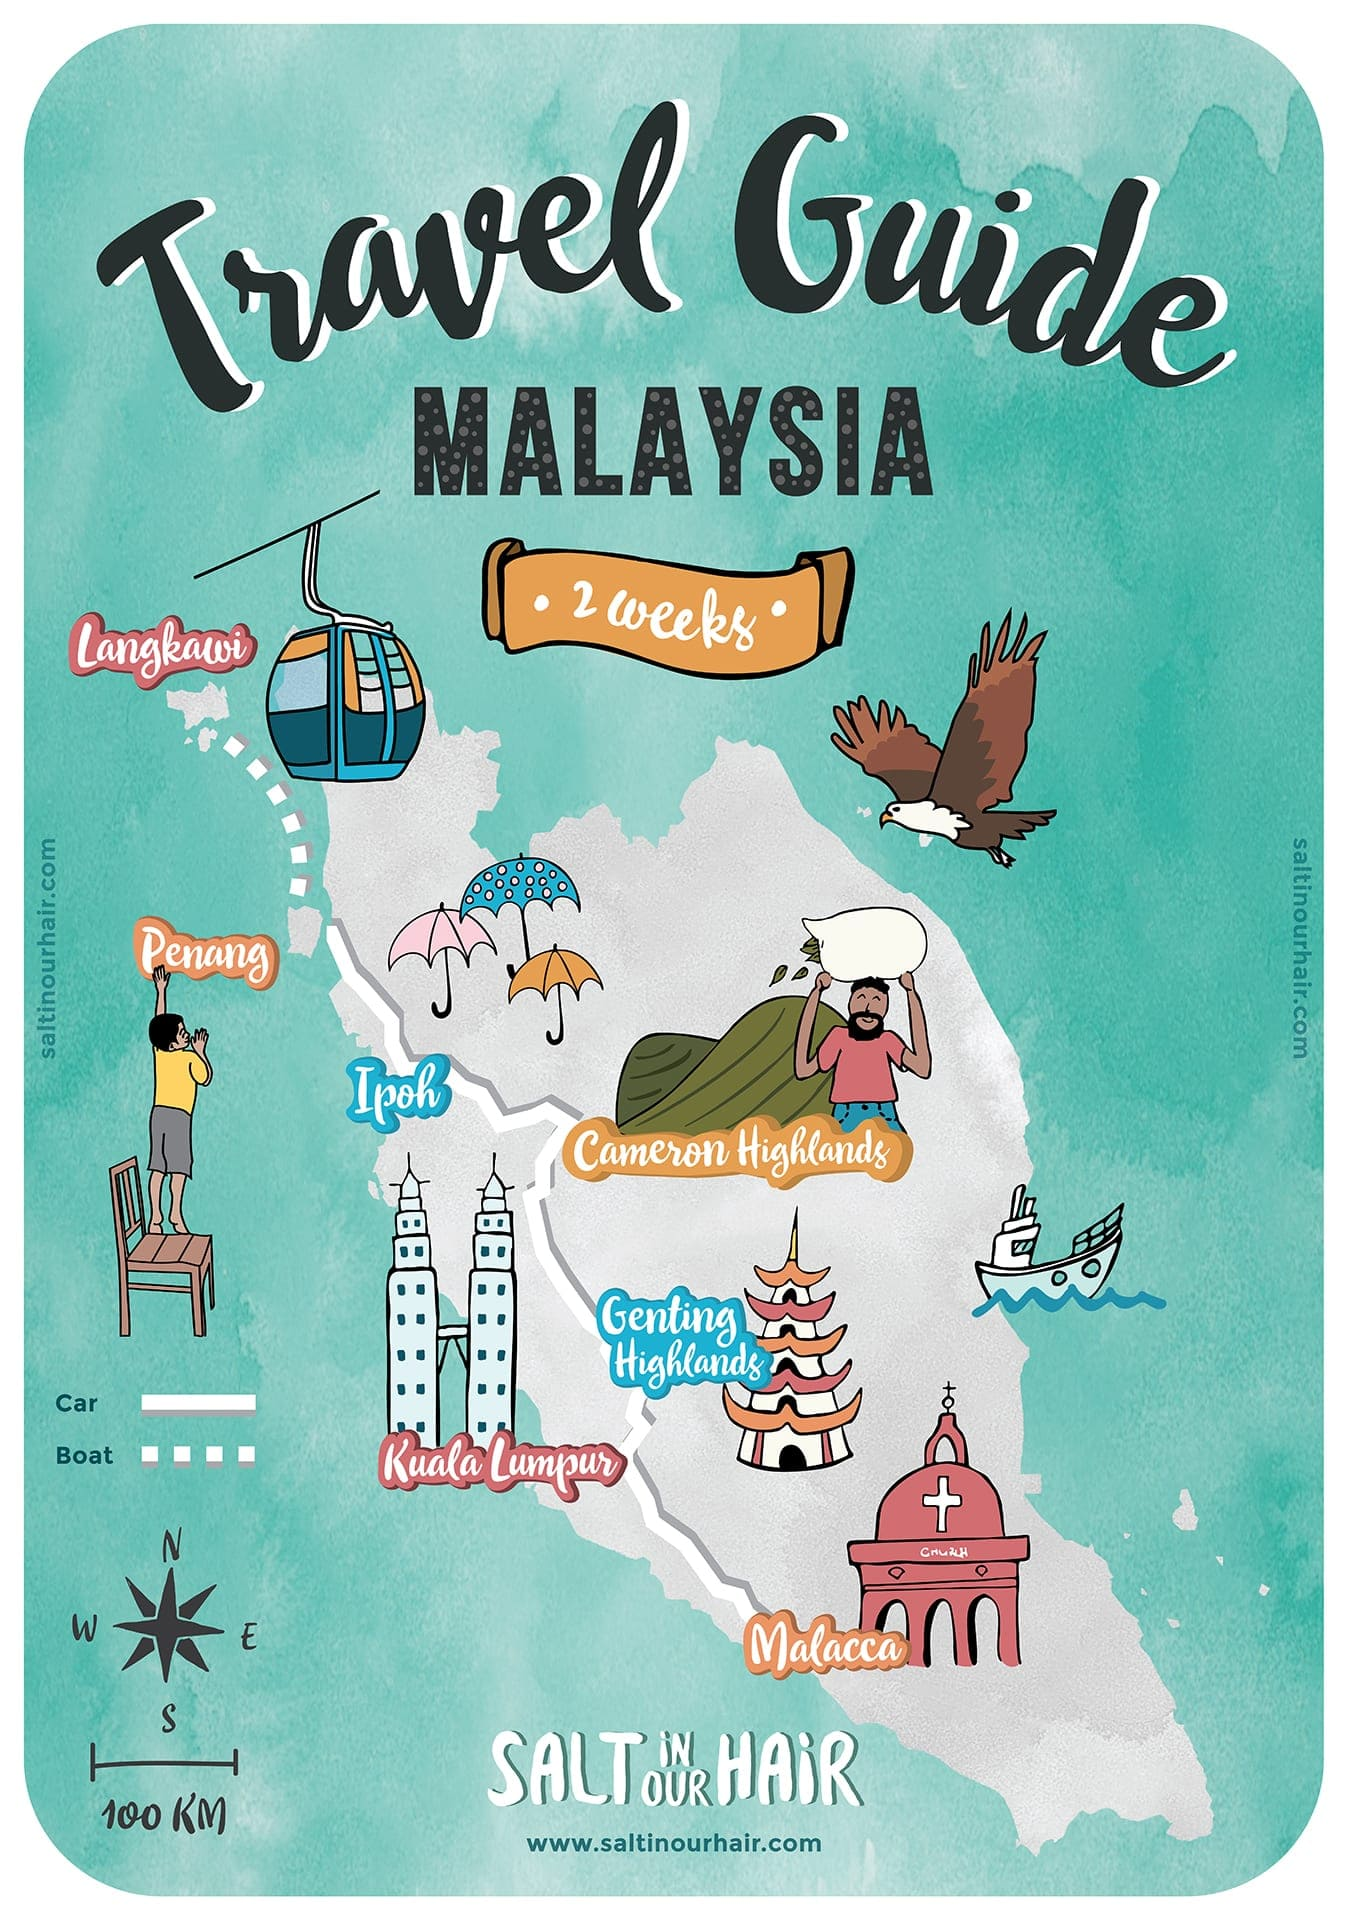 Malaysia route map travel guide